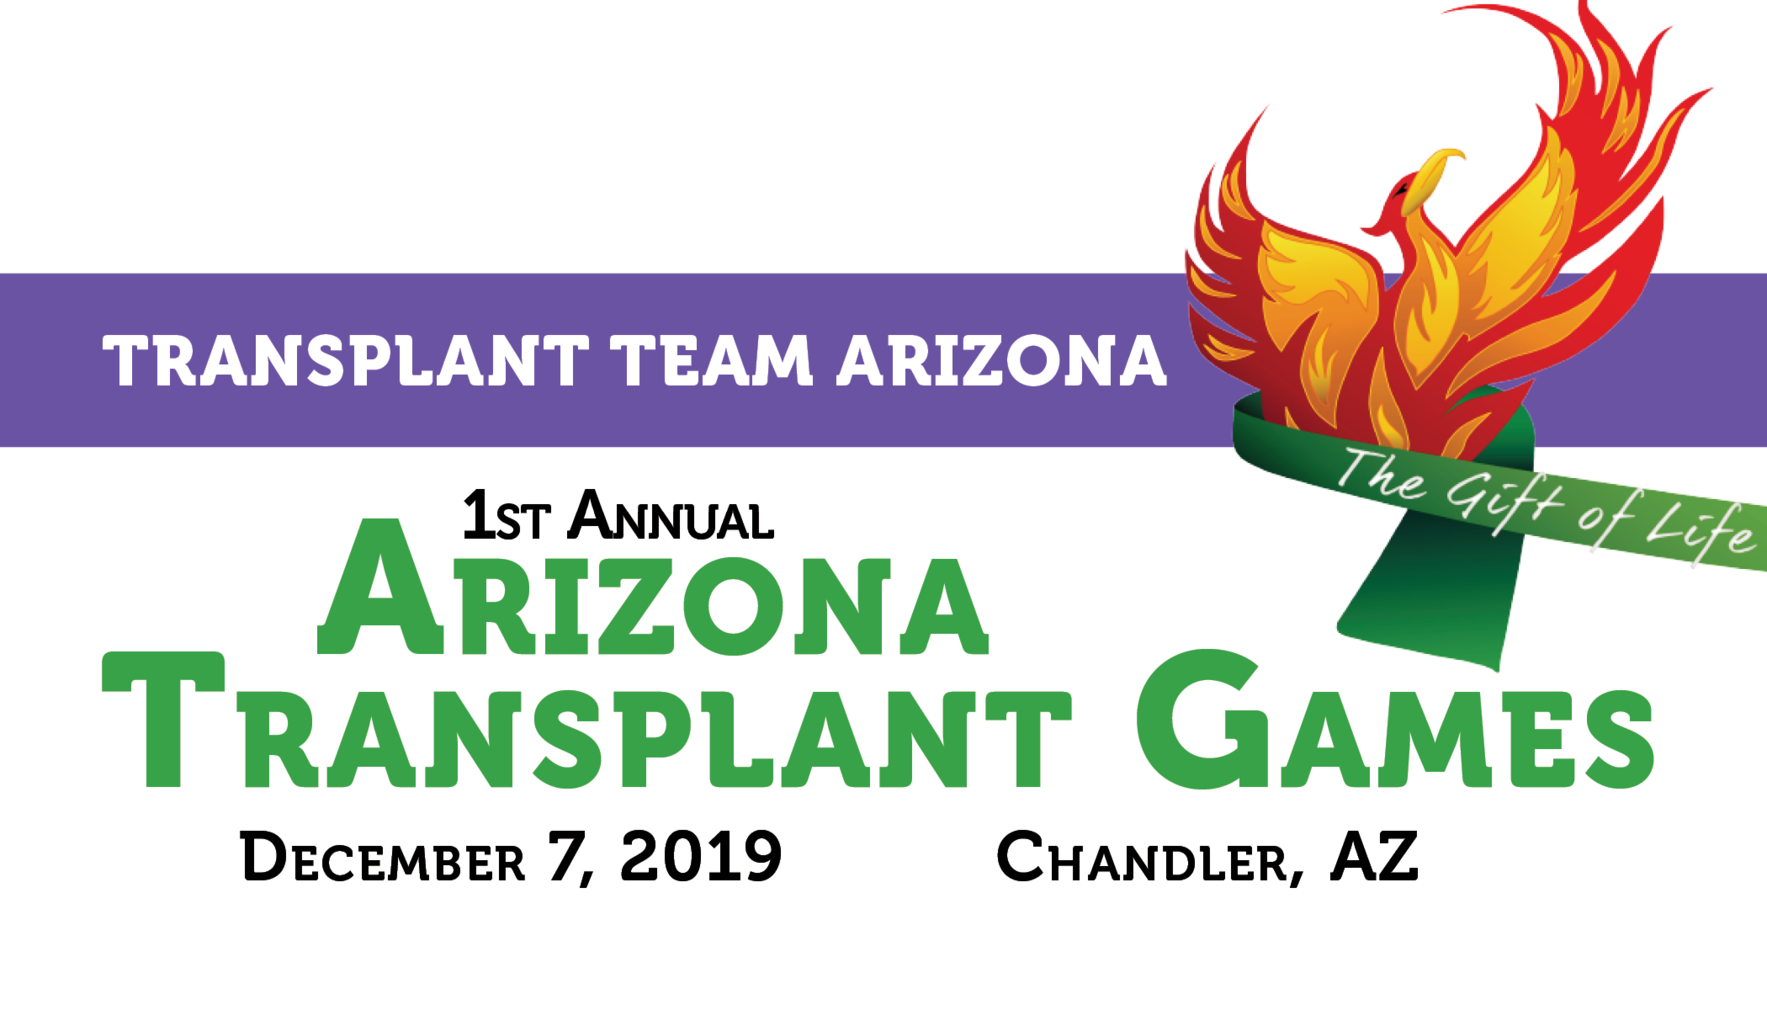 Arizona Transplant Games image